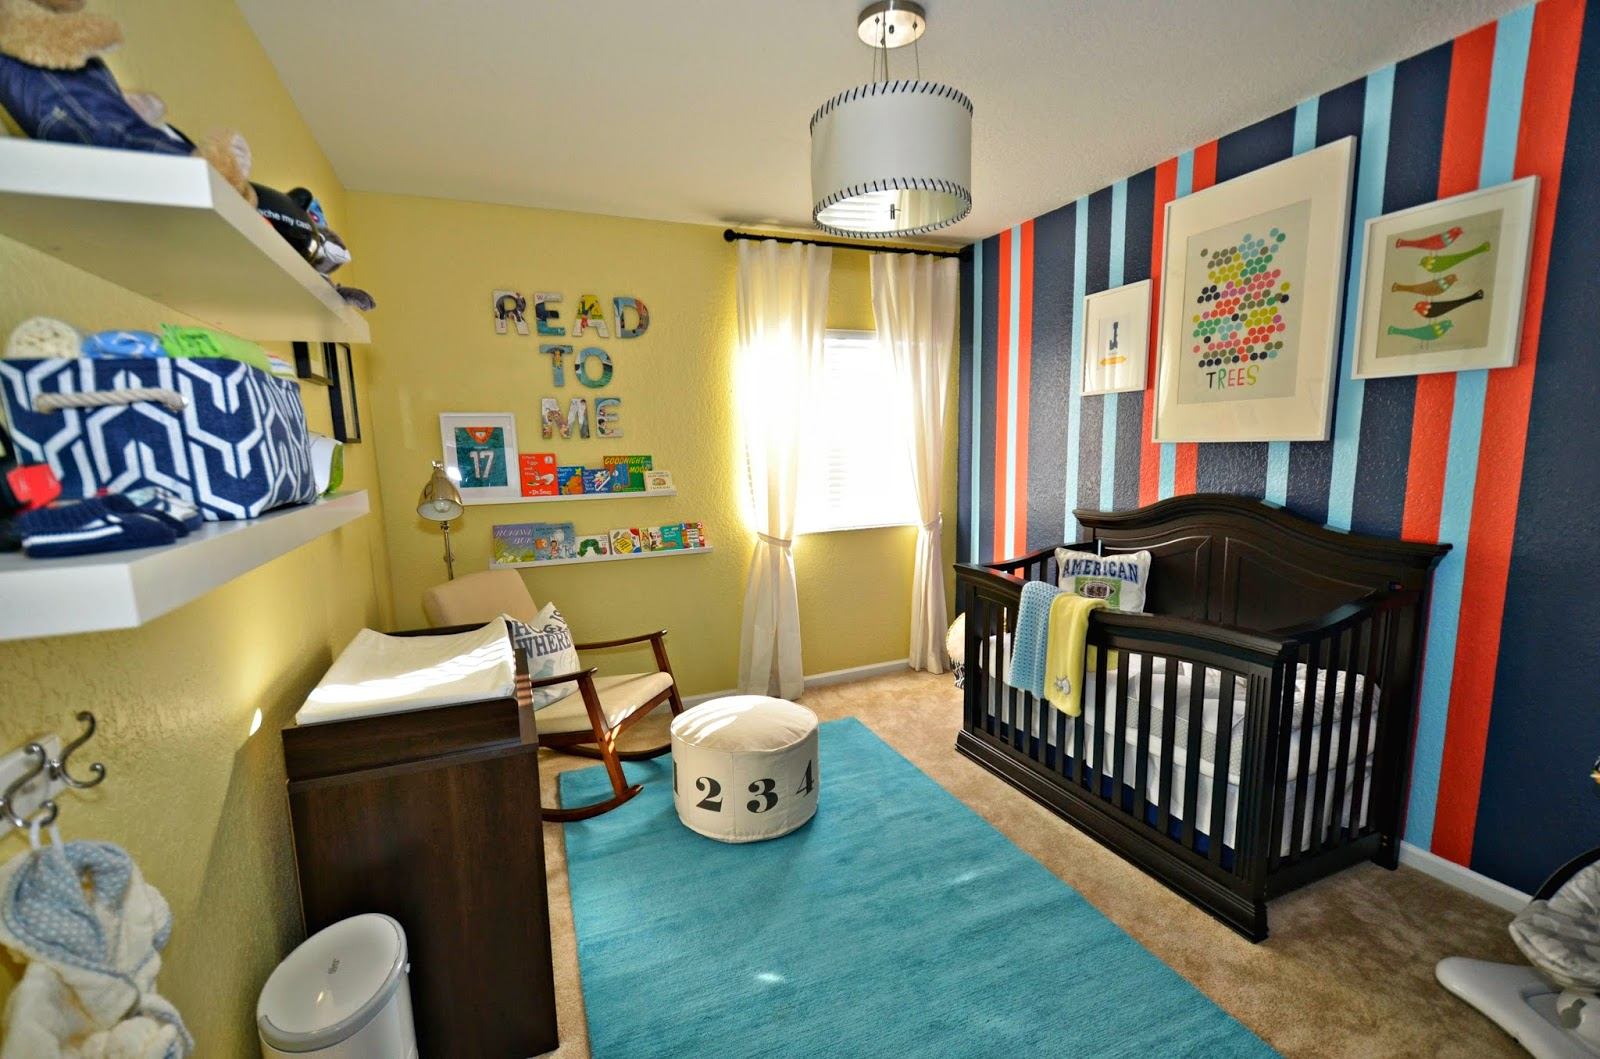 Live Laugh Decorate Live Laugh Decorate A Colorful Modern And Fun Nursery